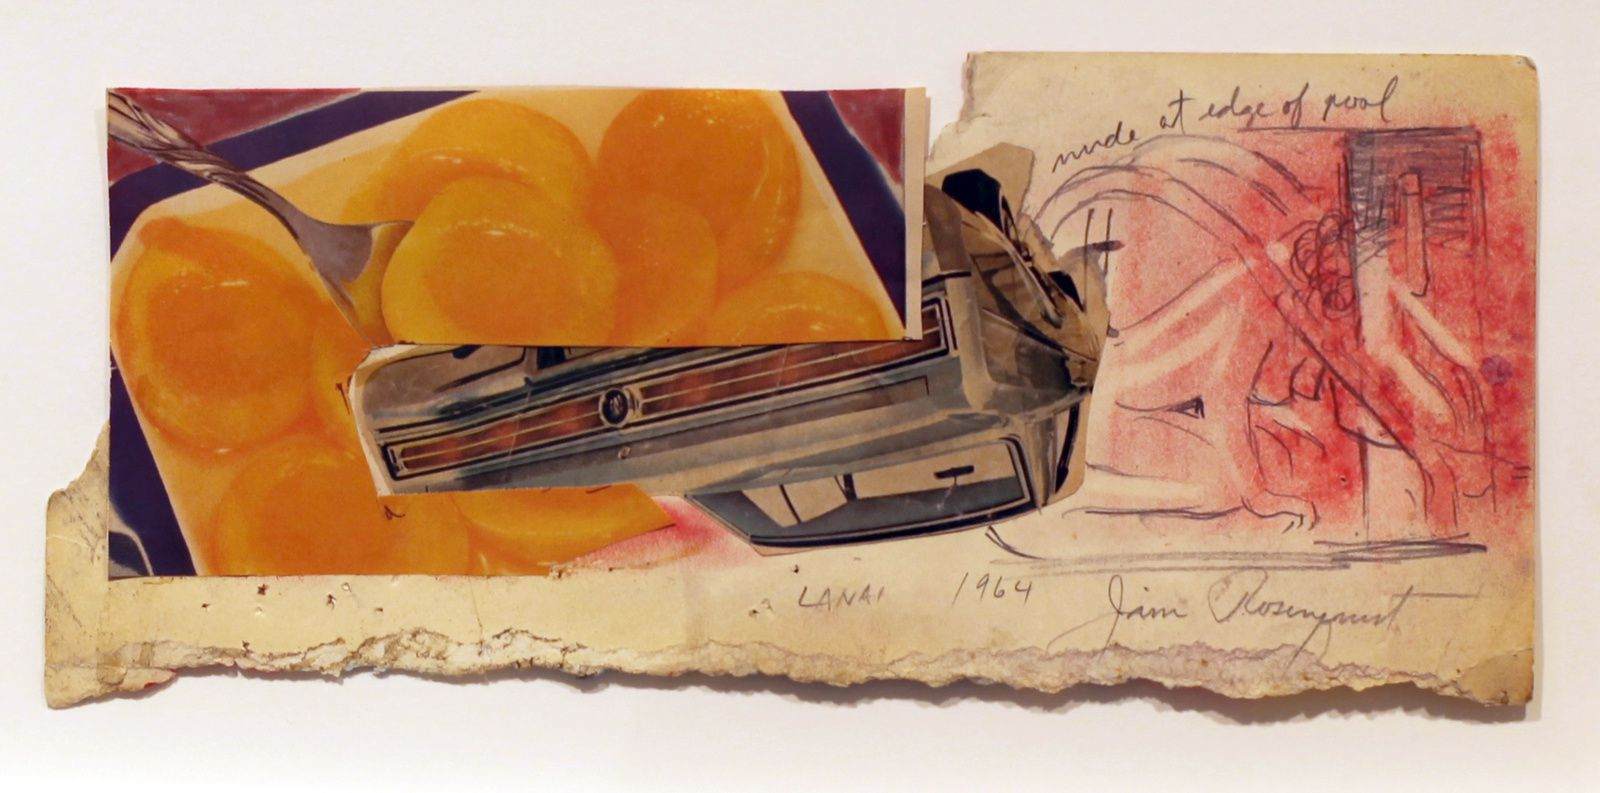 """Source and preparatory sketch for Lanai"", 1964 de James ROSENQUIST - Courtesy Galerie ROPAC Paris © Photo Éric Simon"